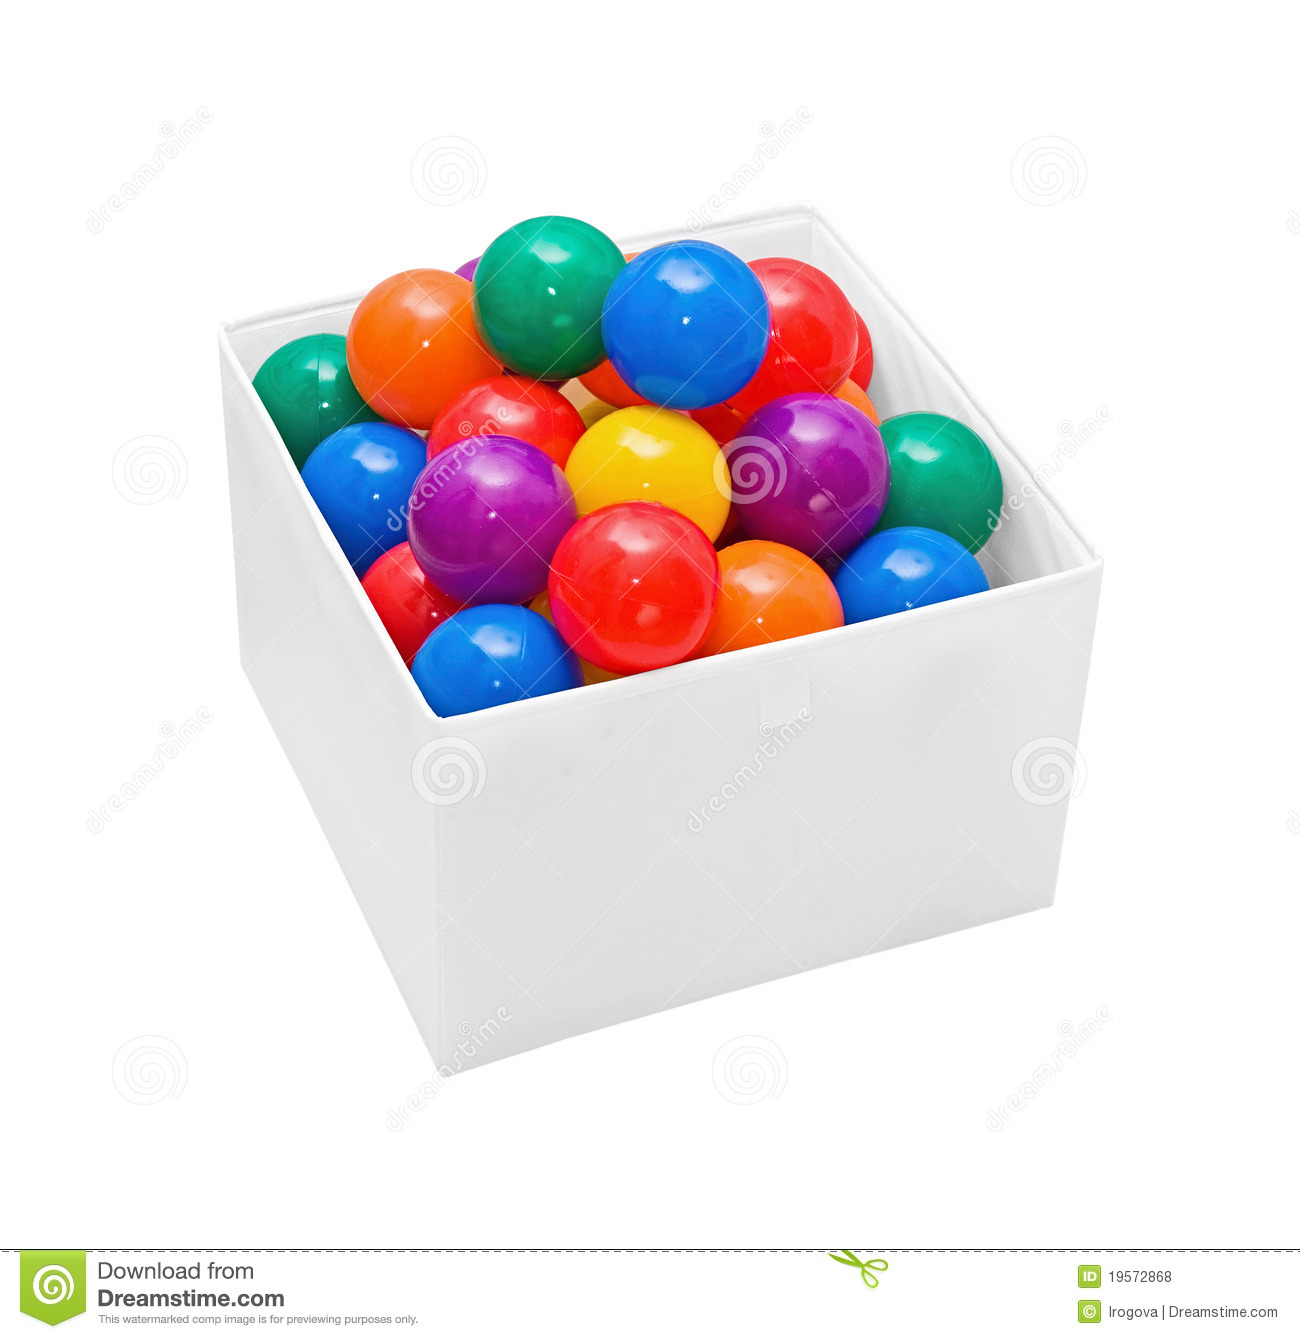 Ball box clipart.